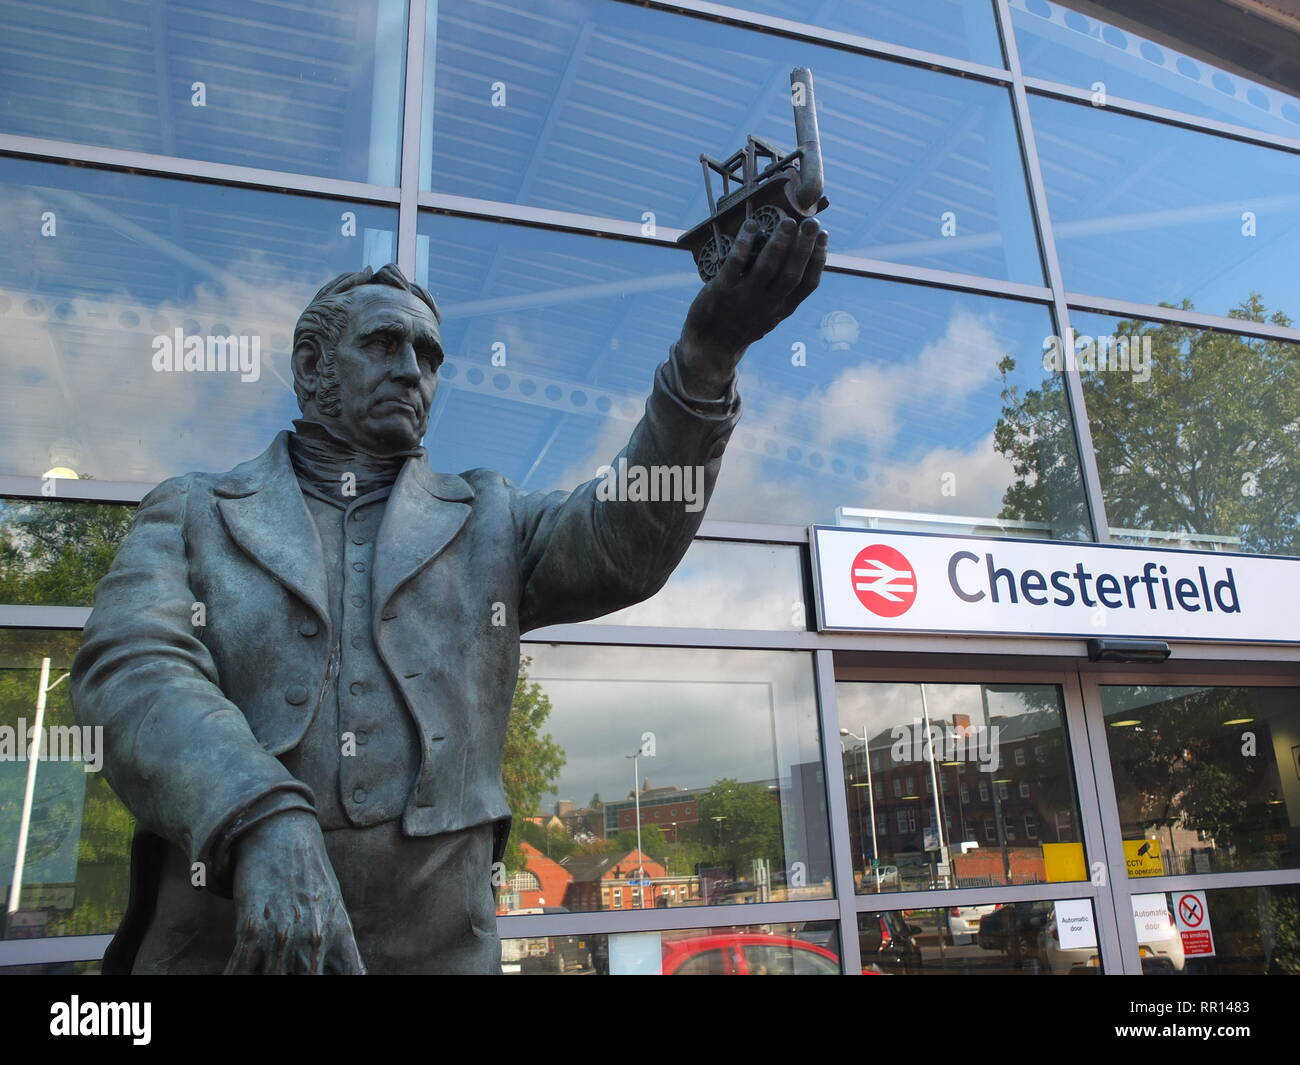 Statue of railway Pioneer George Stephenson outside Chesterfield Railway Station. A Northumbrian by birth, he came to settle and died in the town. Stock Photo